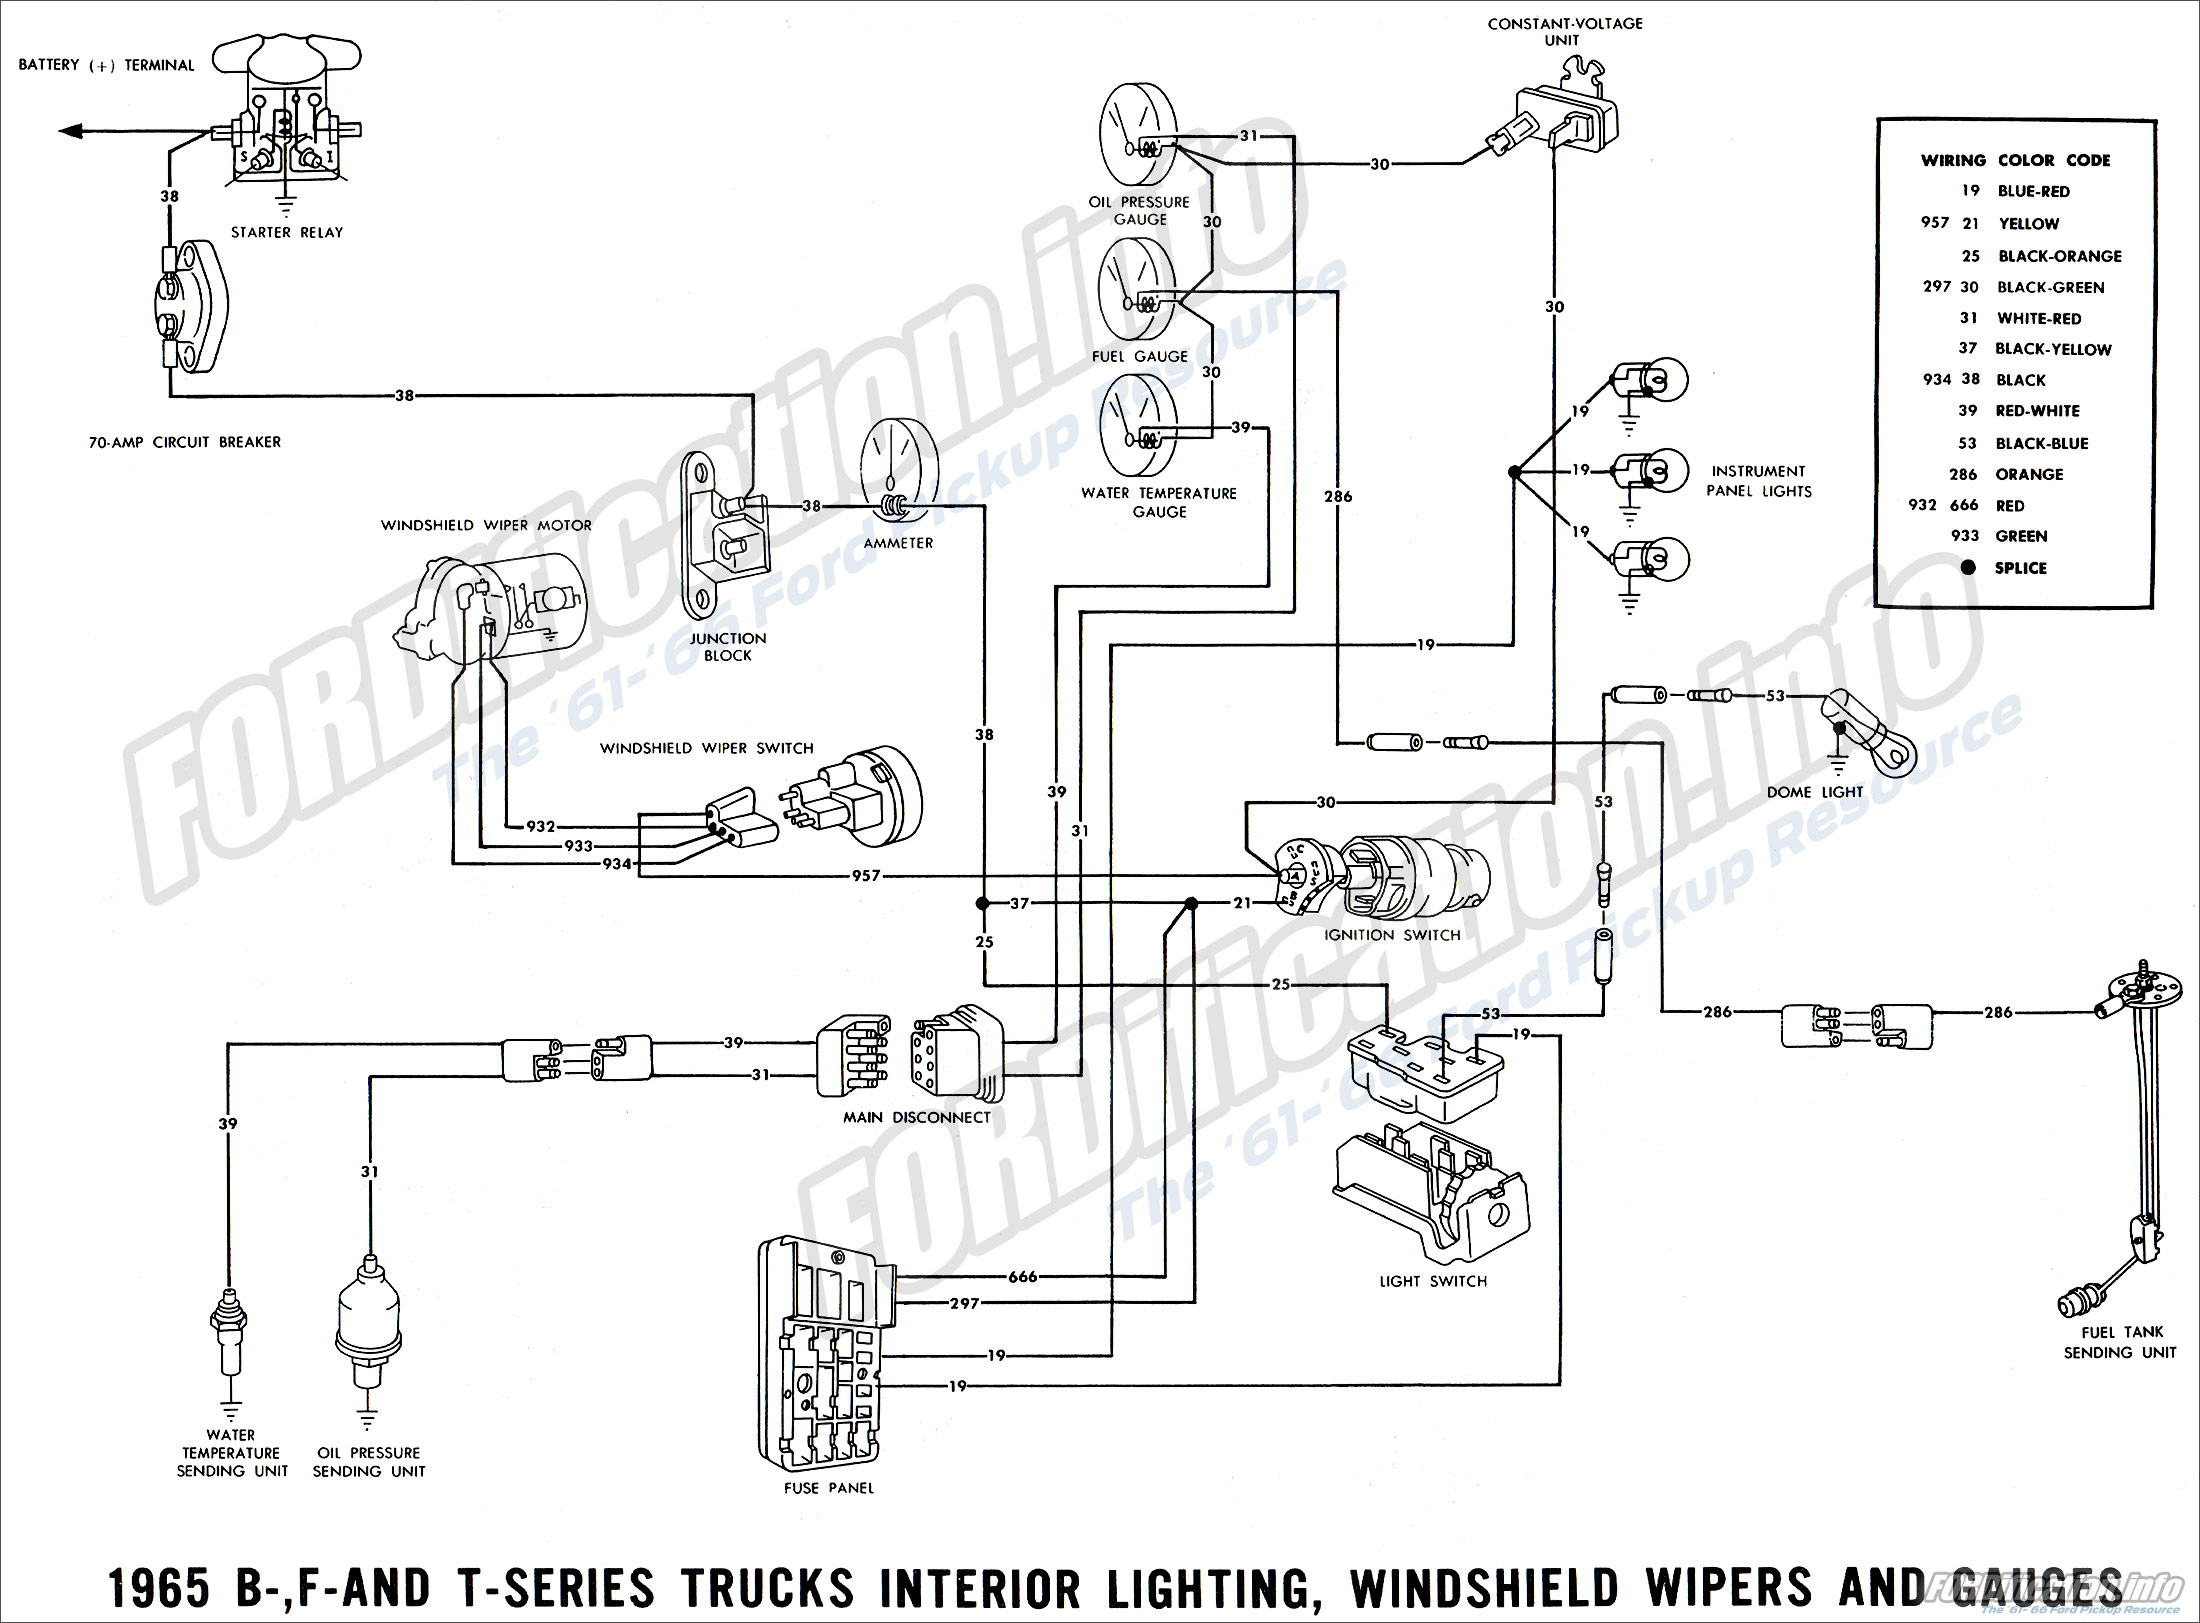 1965 ford truck wiring diagrams fordification info the '61 '66 1969 ford f100 wiring diagram 1965 b , f and t series truck interior lighting, windshield wiper and gauges